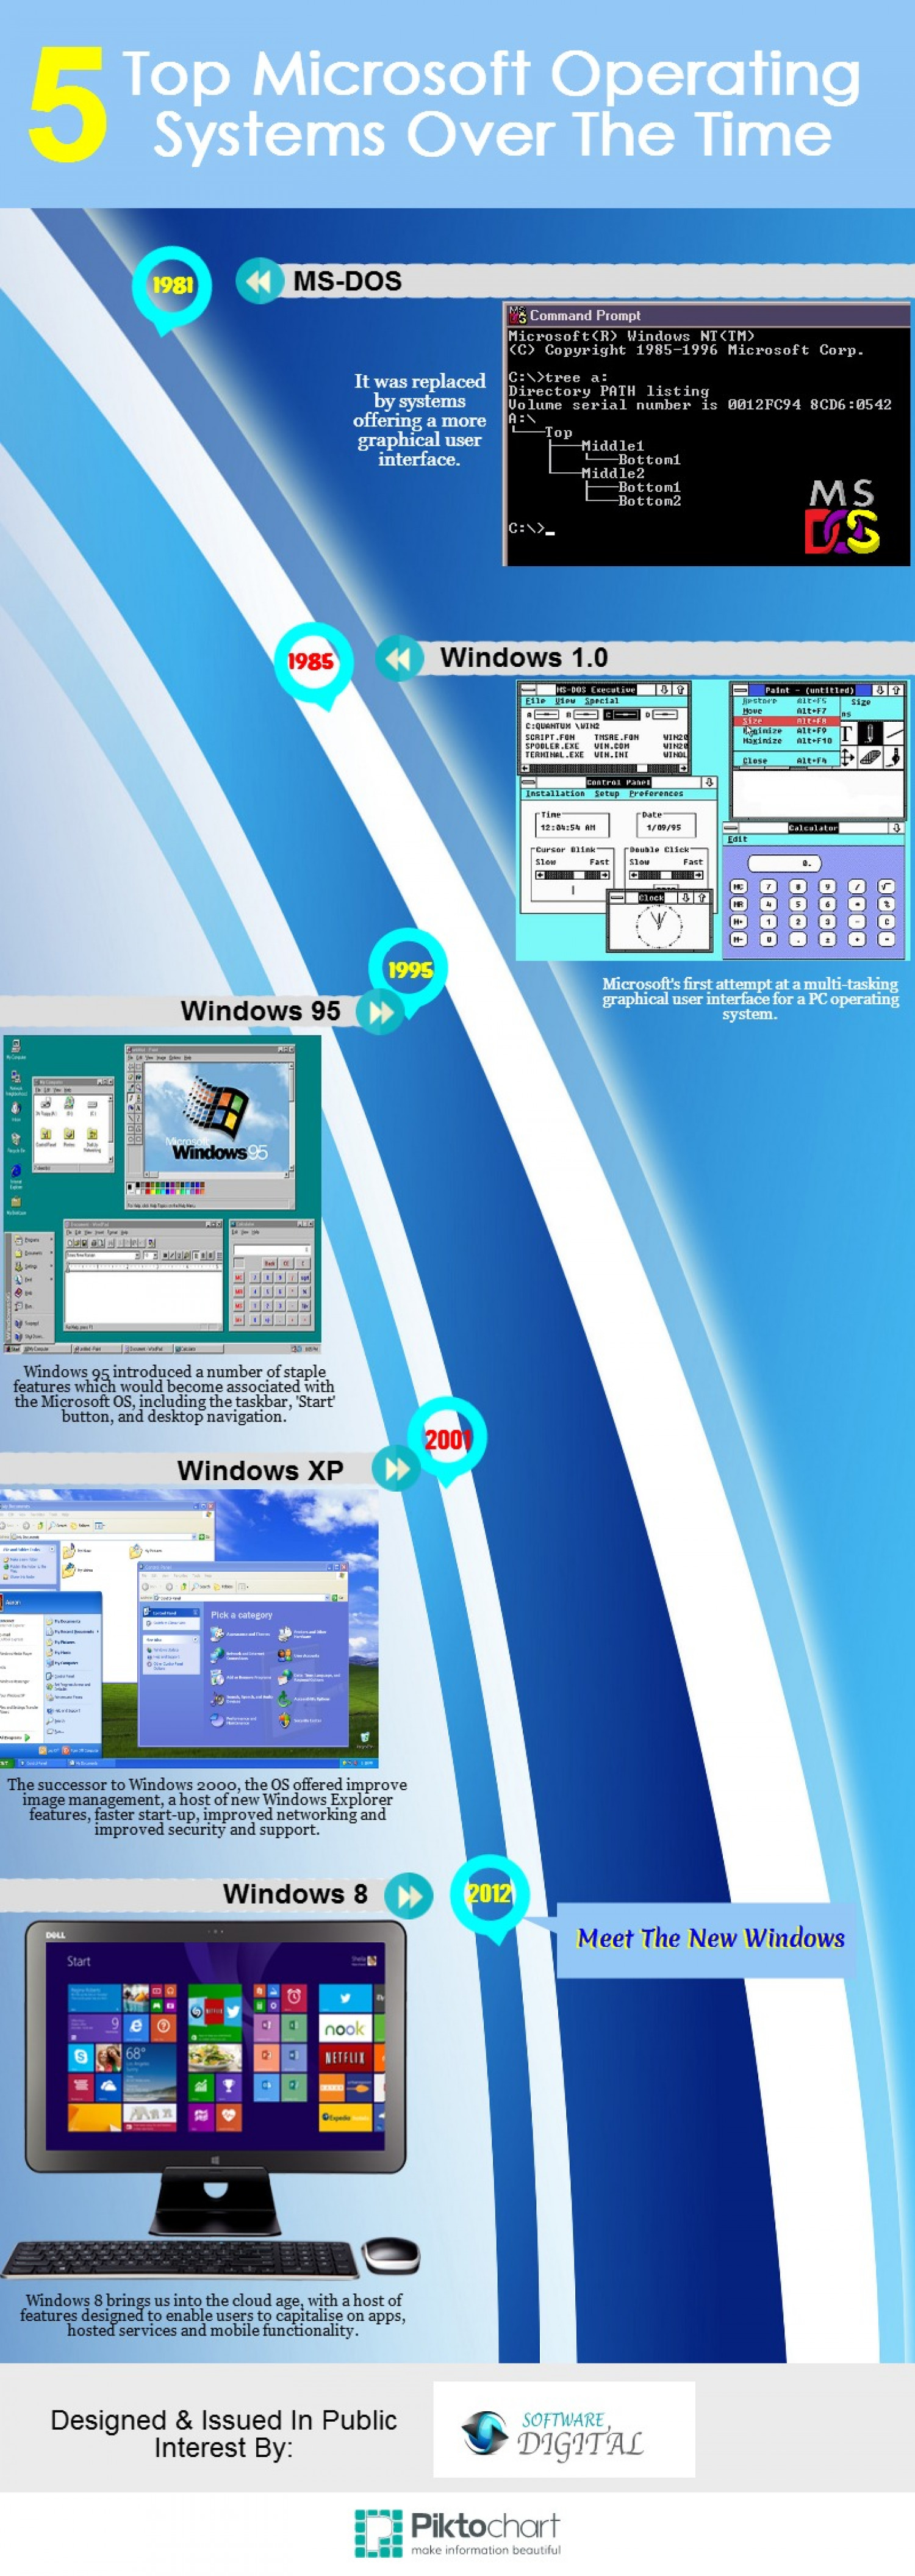 5 Top Microsoft Operating Systems Over The Time Infographic